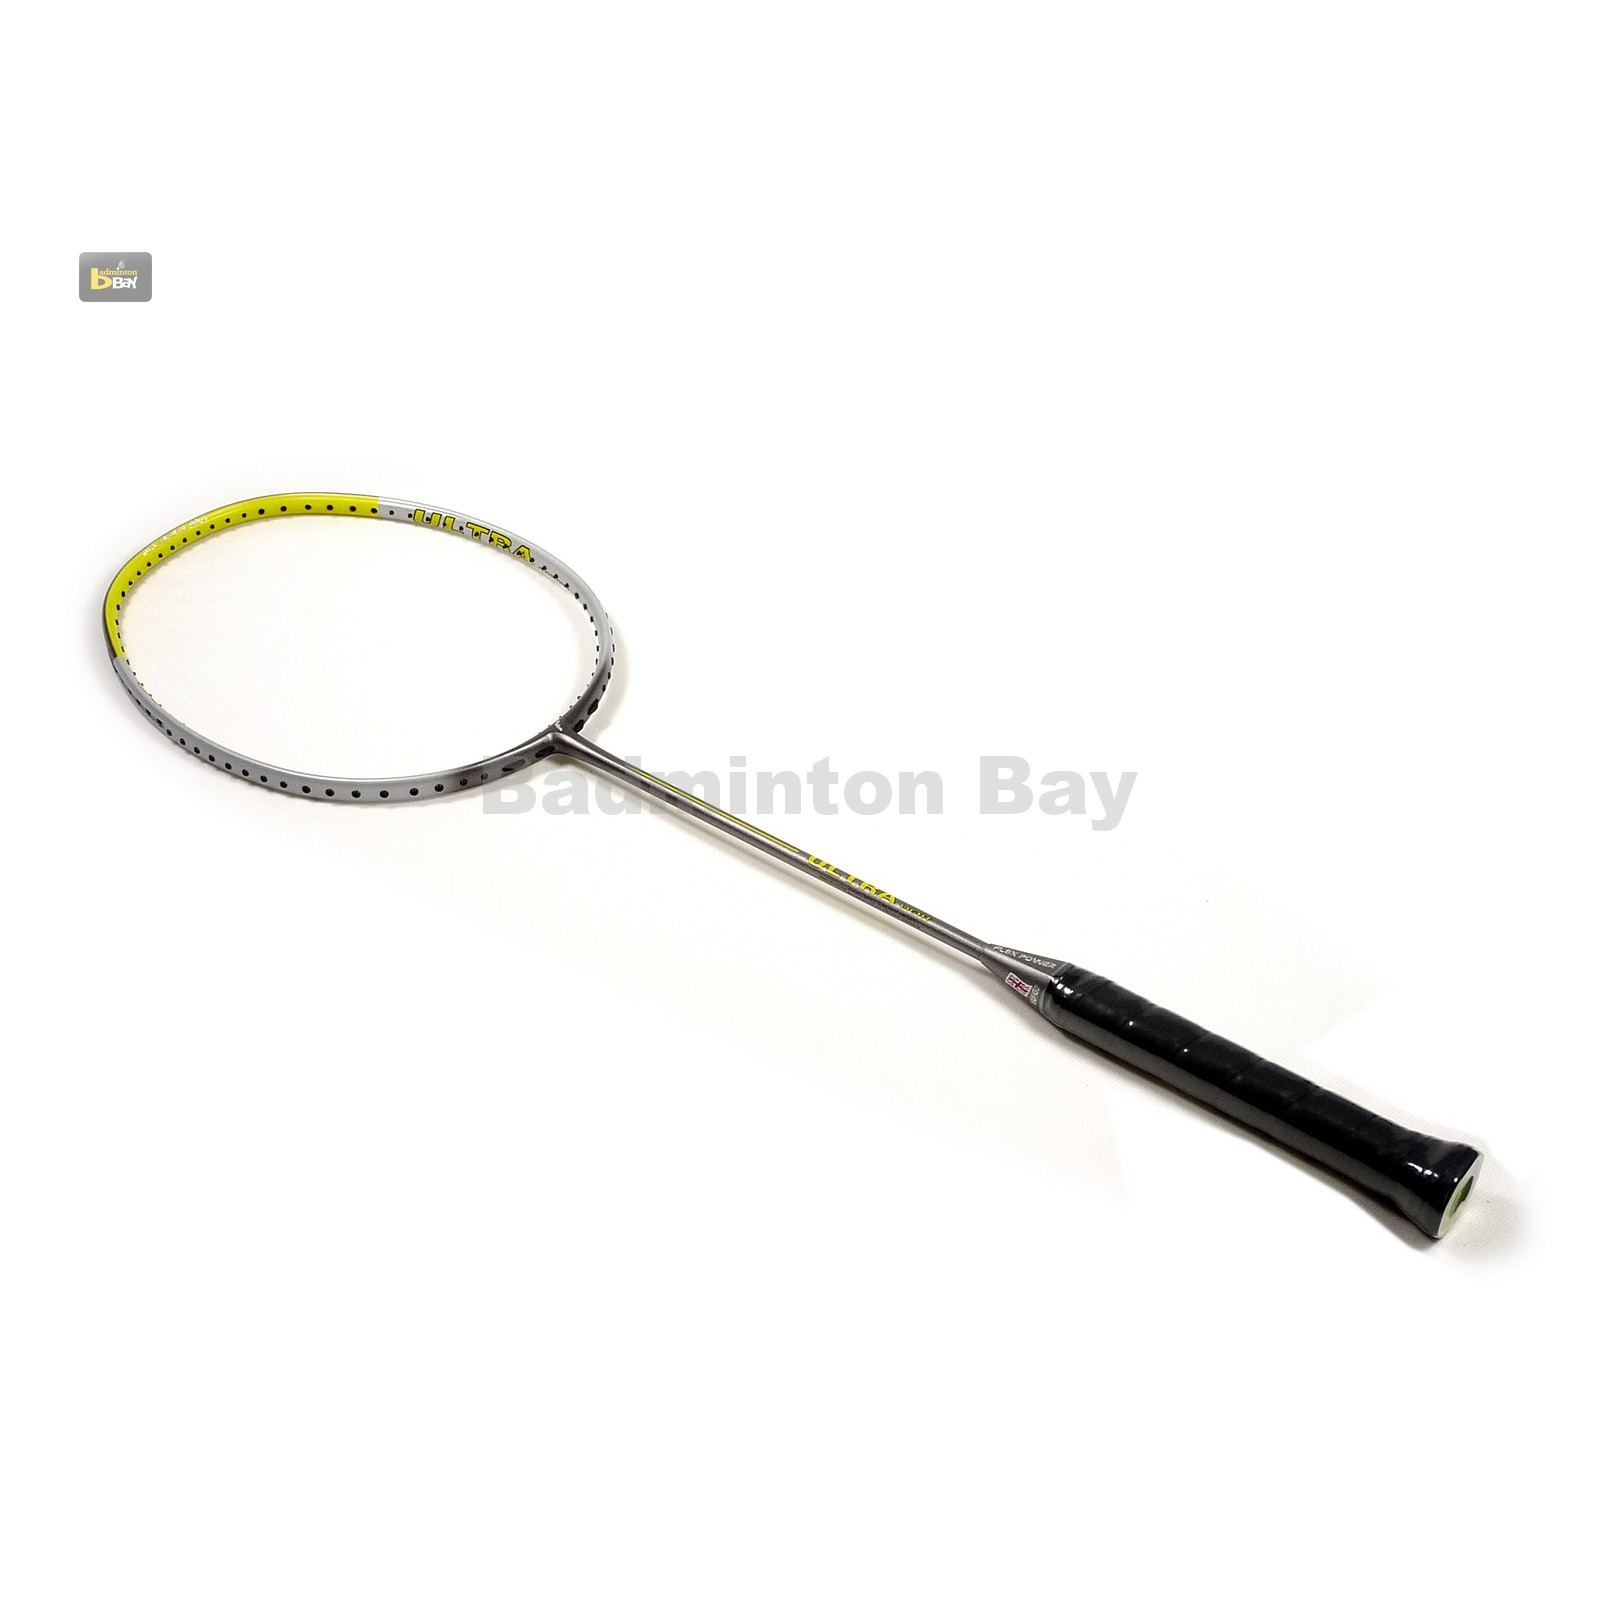 flex power badminton racket review